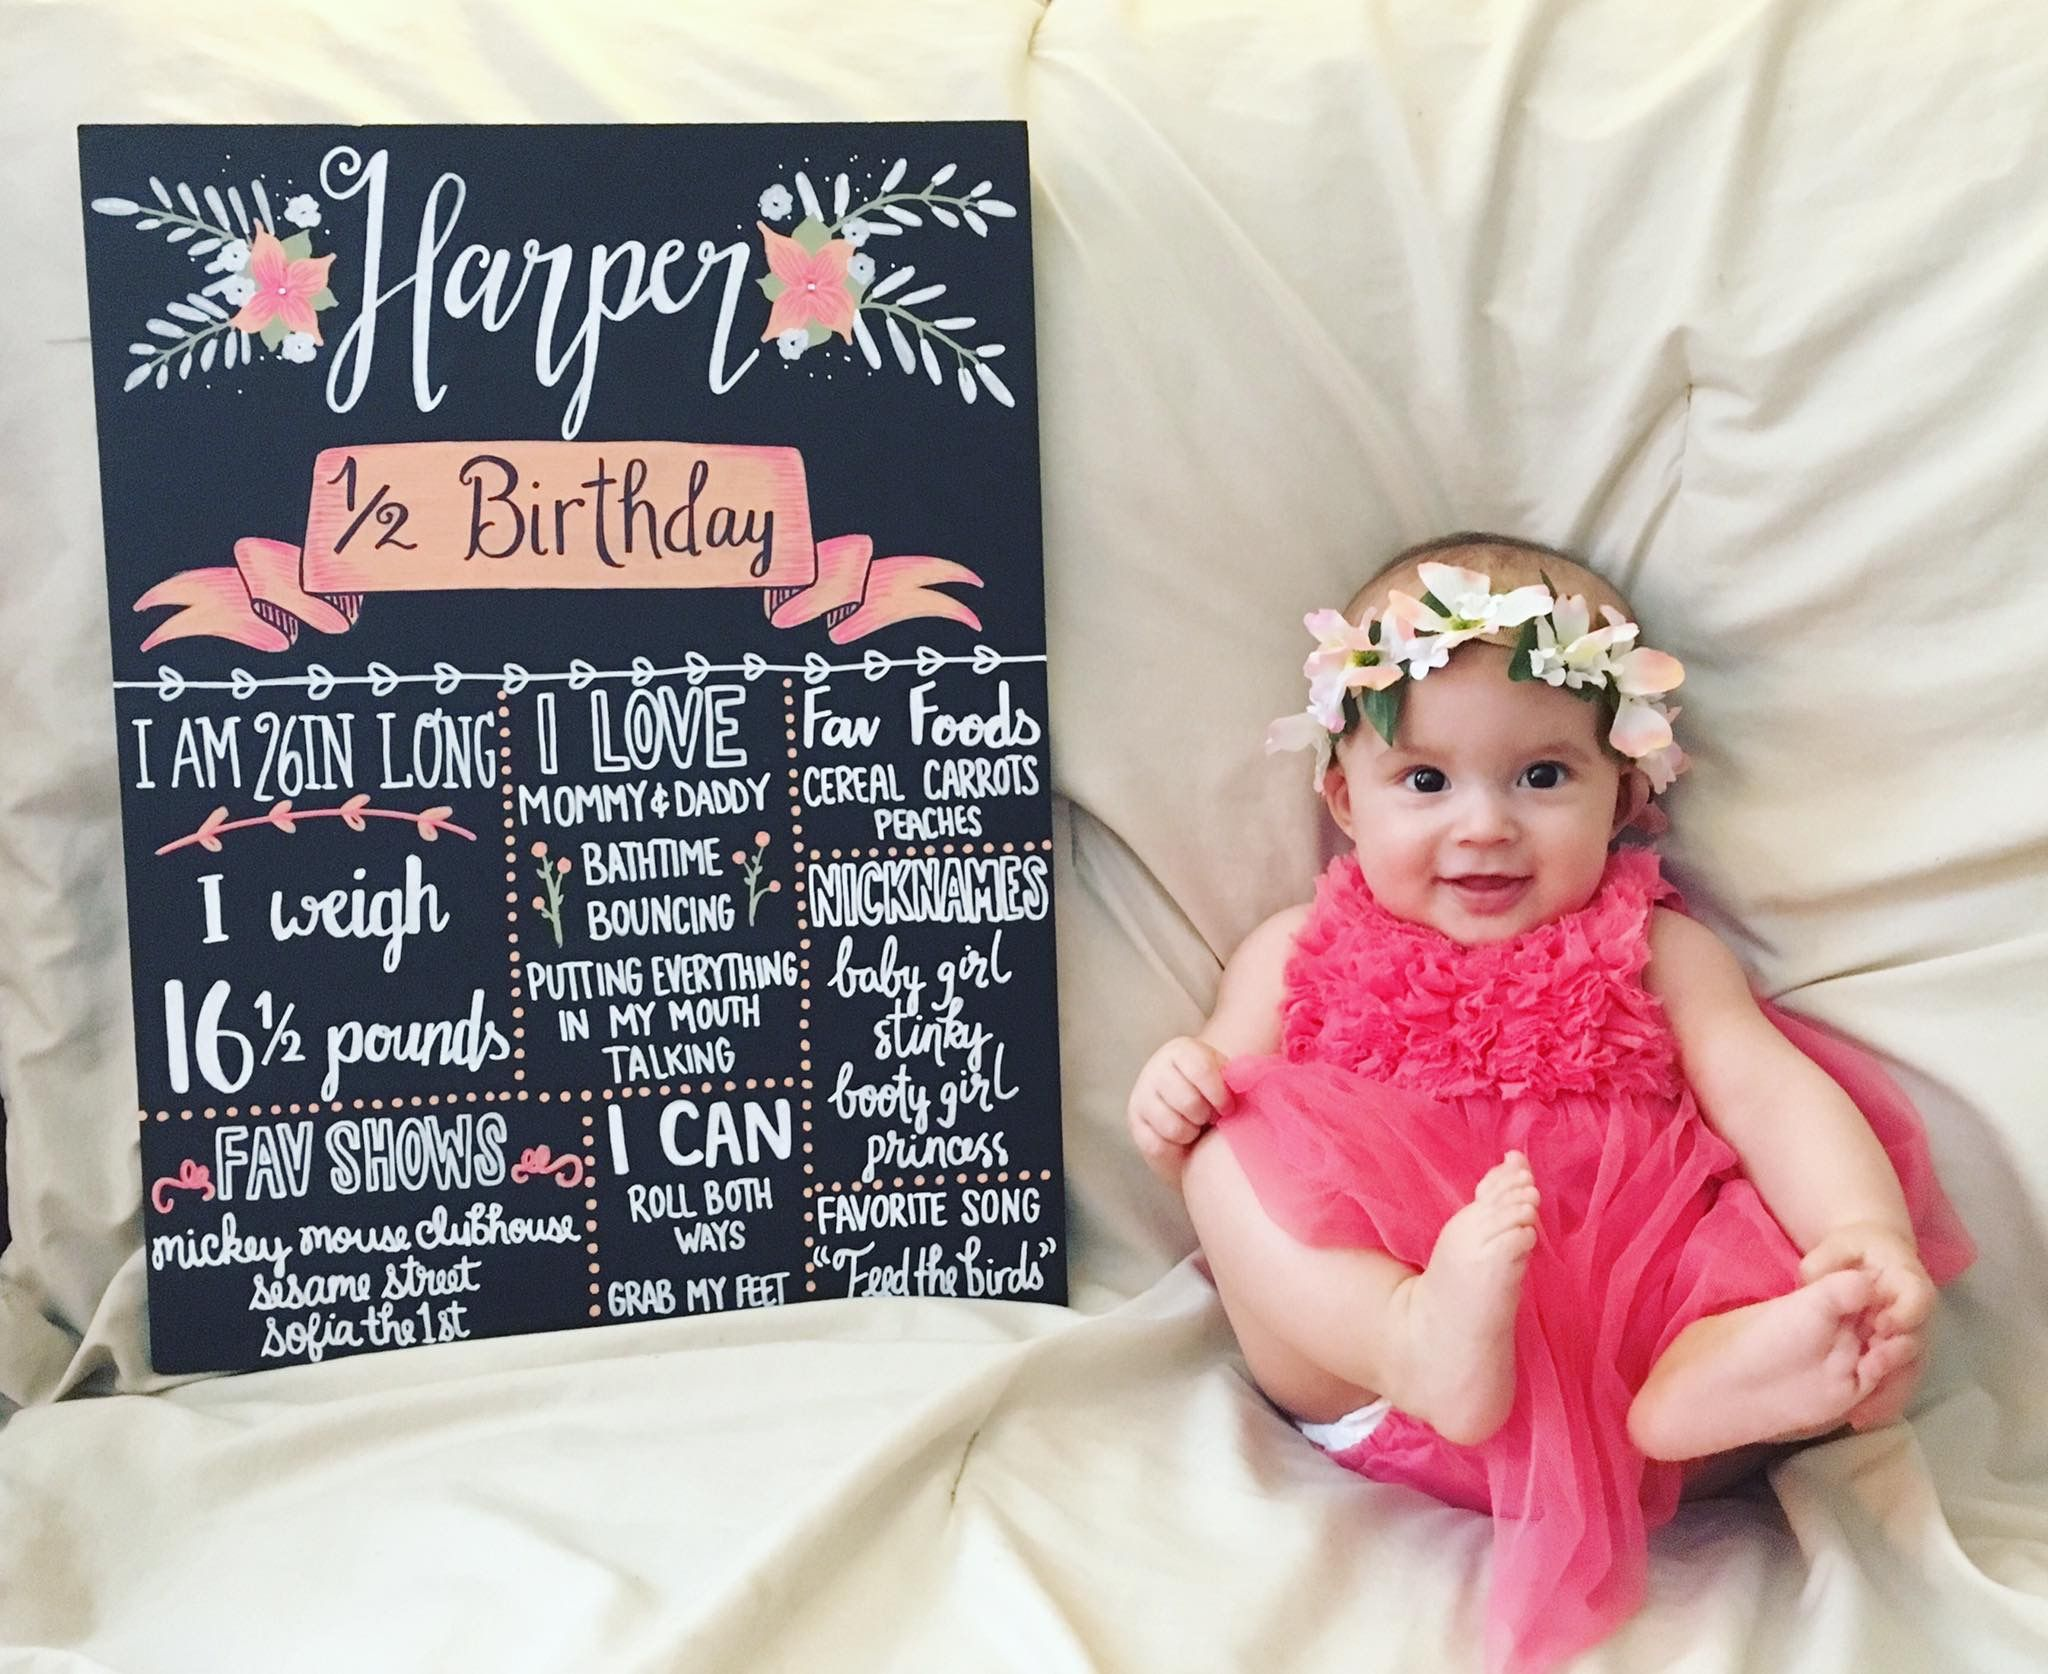 8 months old birthday message ; 8-months-old-birthday-message-3881ed5a10a65f52262ab856a29c1fbe